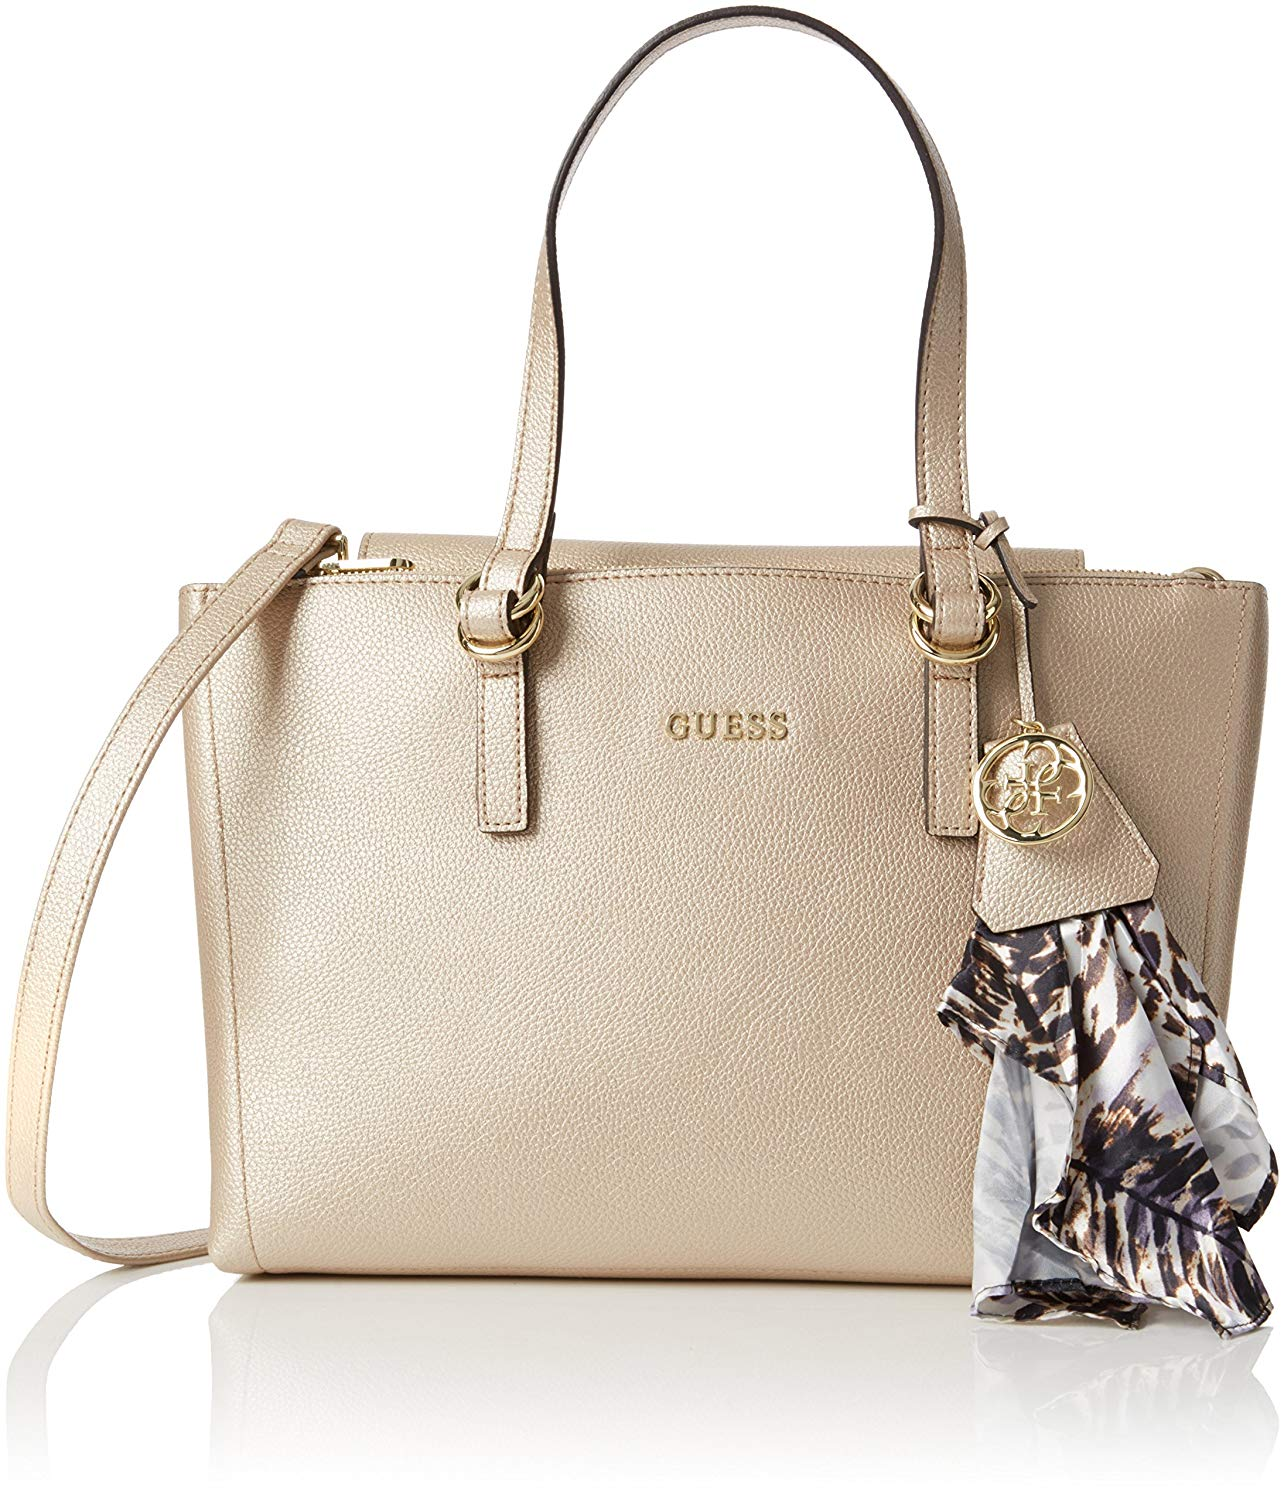 sac guess or